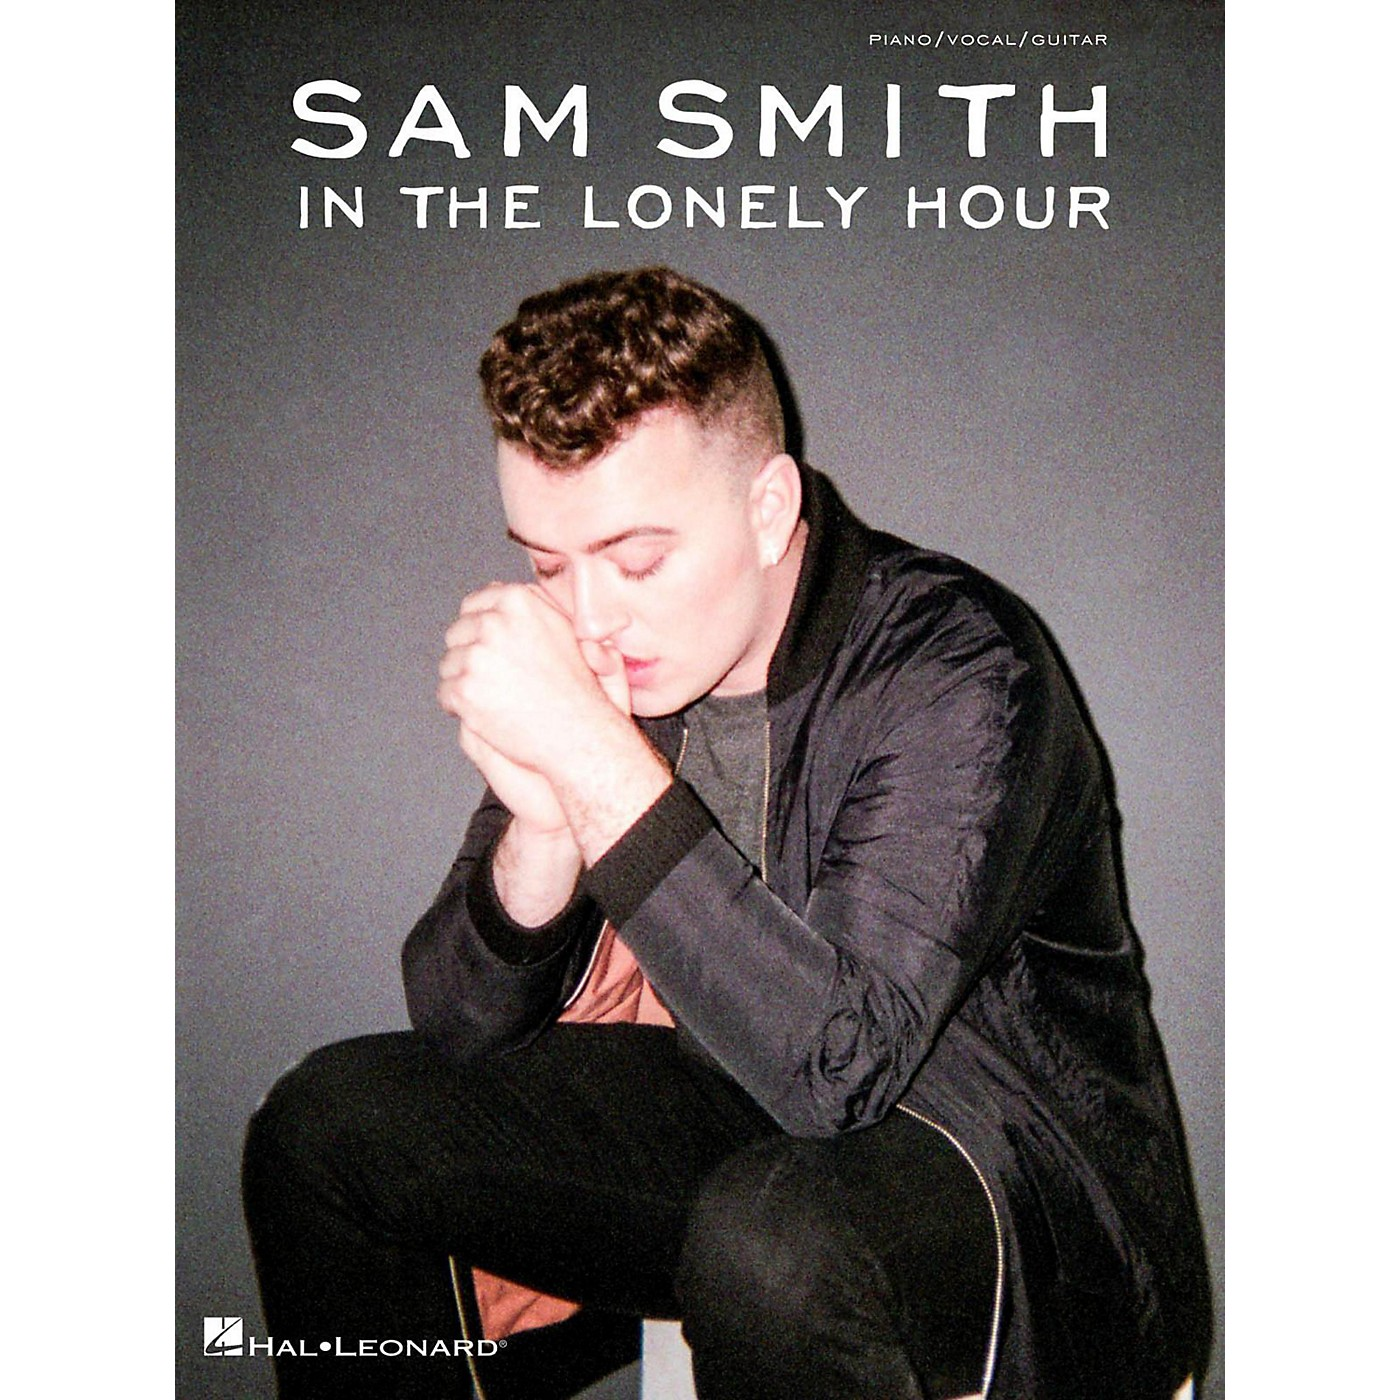 Hal Leonard Sam Smith - In The Lonely Hour Piano/Vocal/Guitar thumbnail